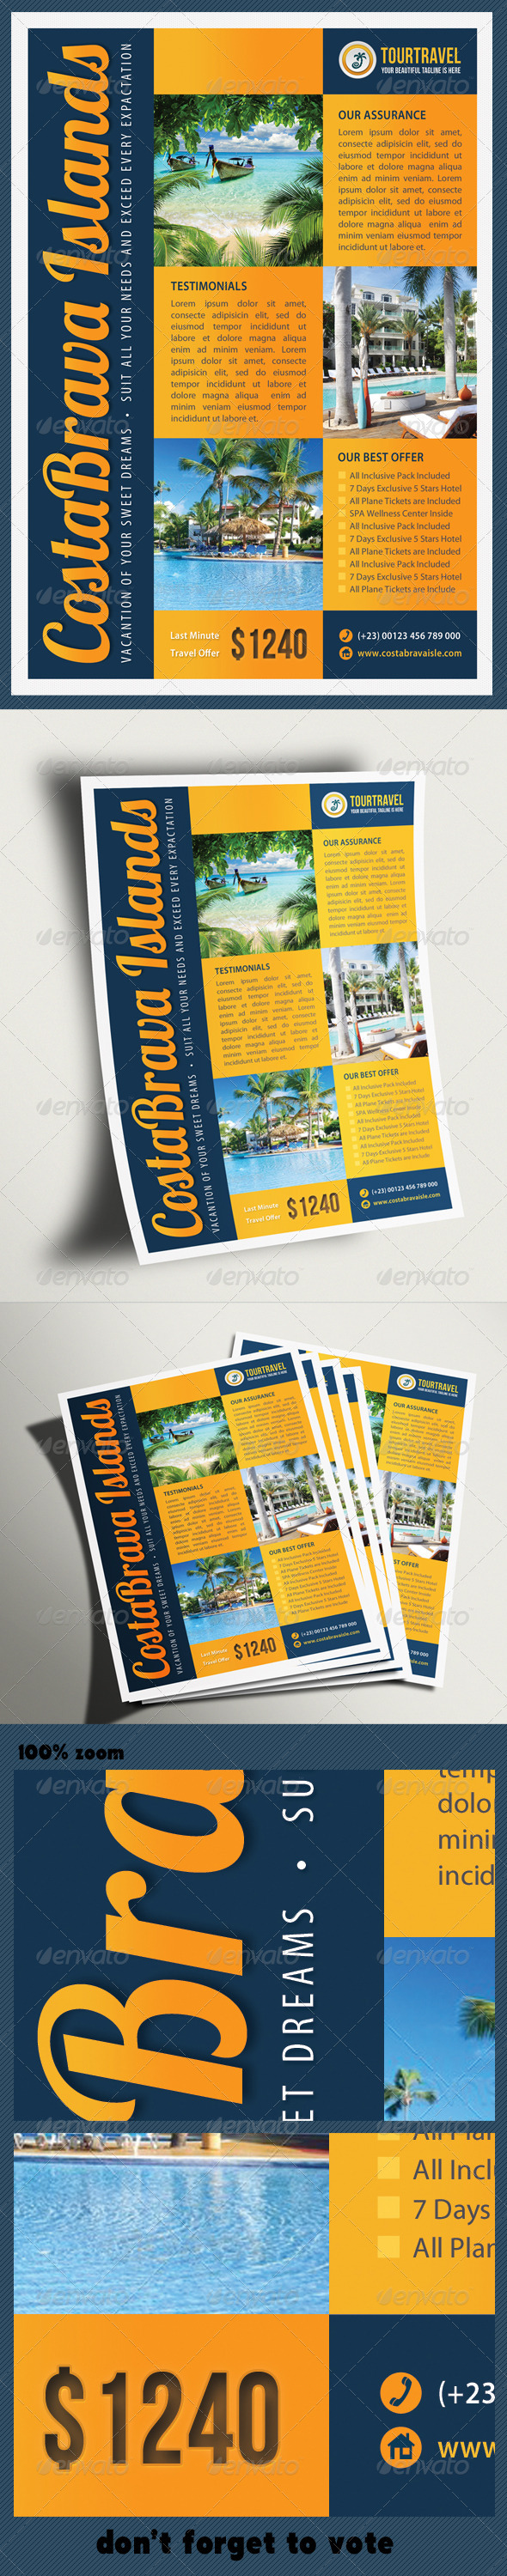 GraphicRiver Travel Agency Banner Template 04 6632485